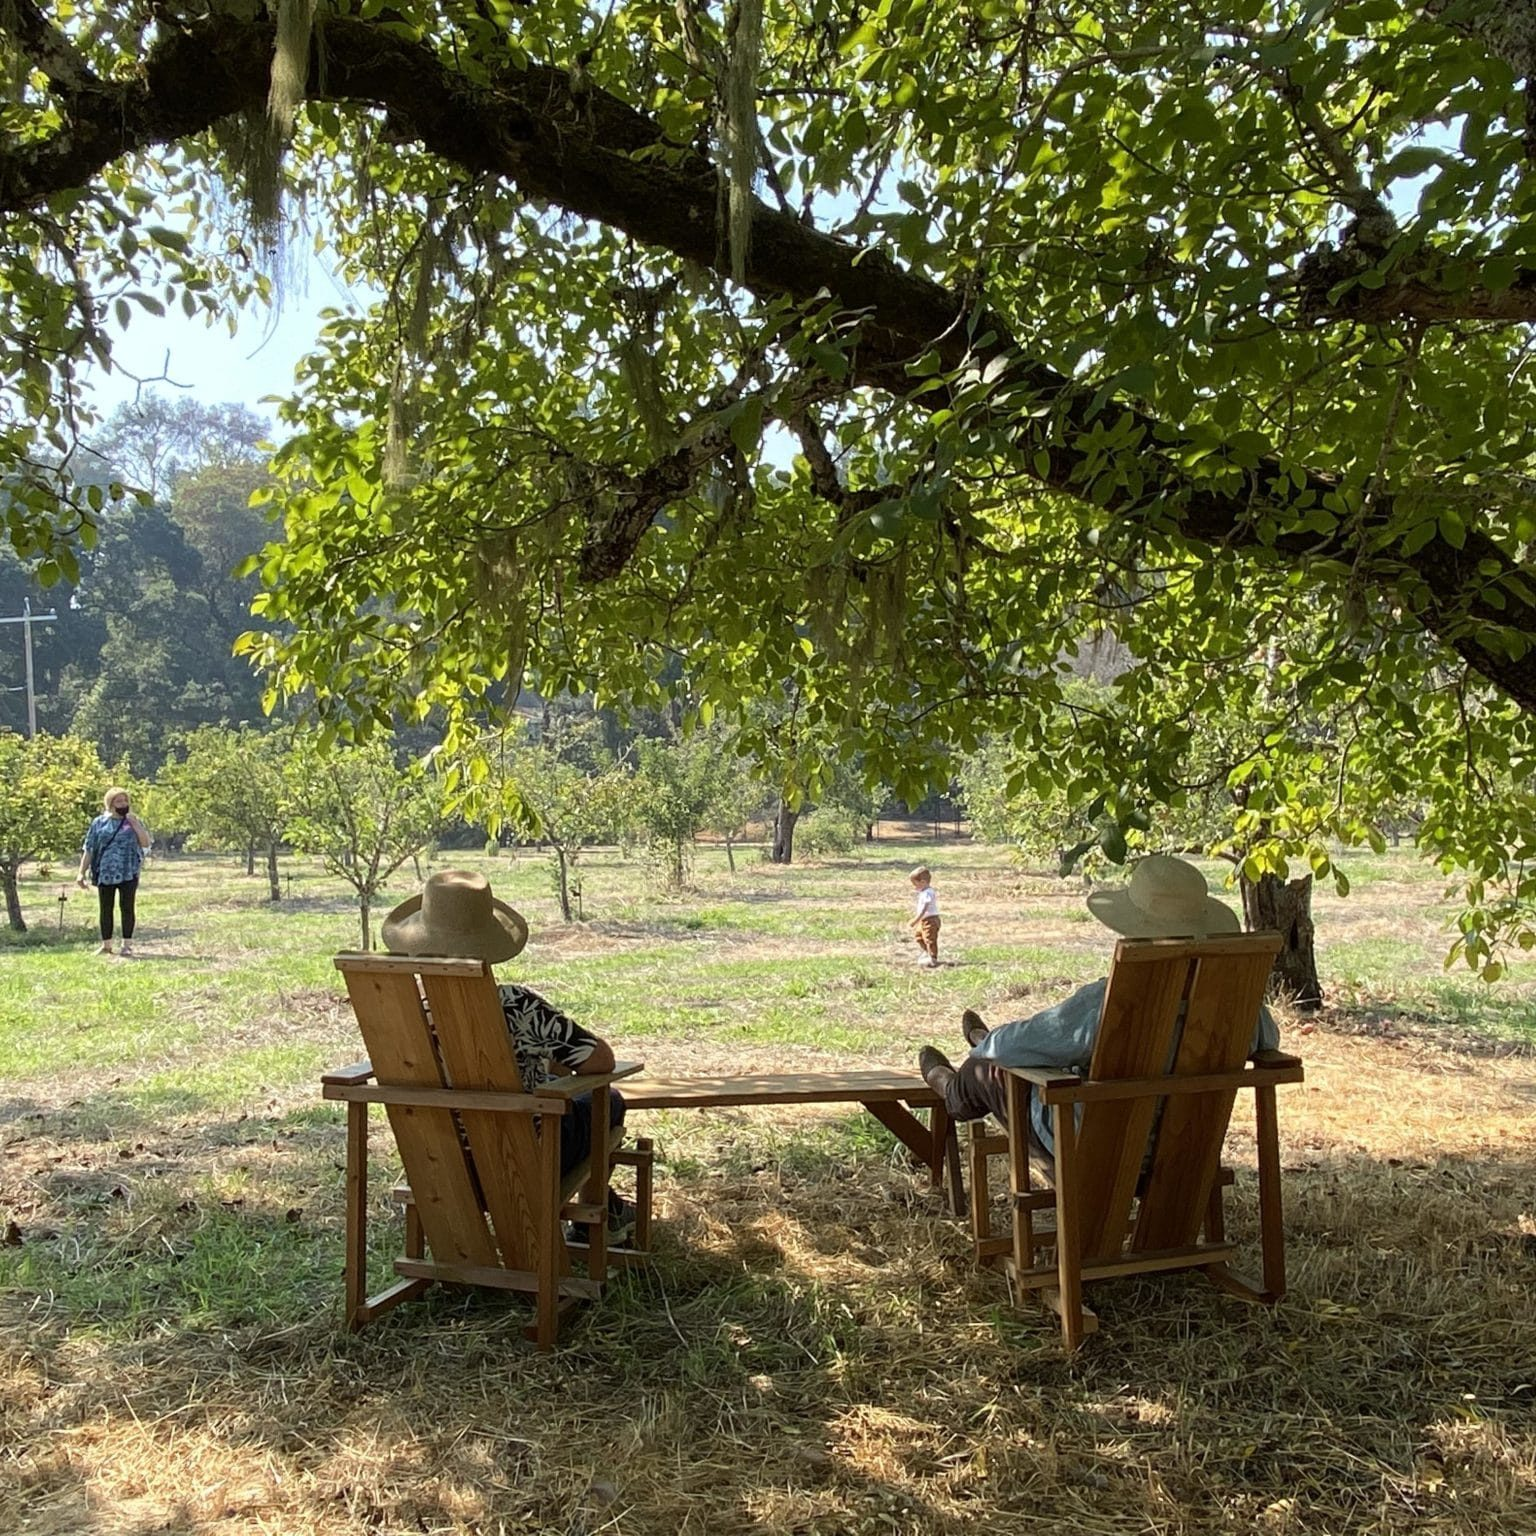 Settle into a redwood chair with a cup of cider.